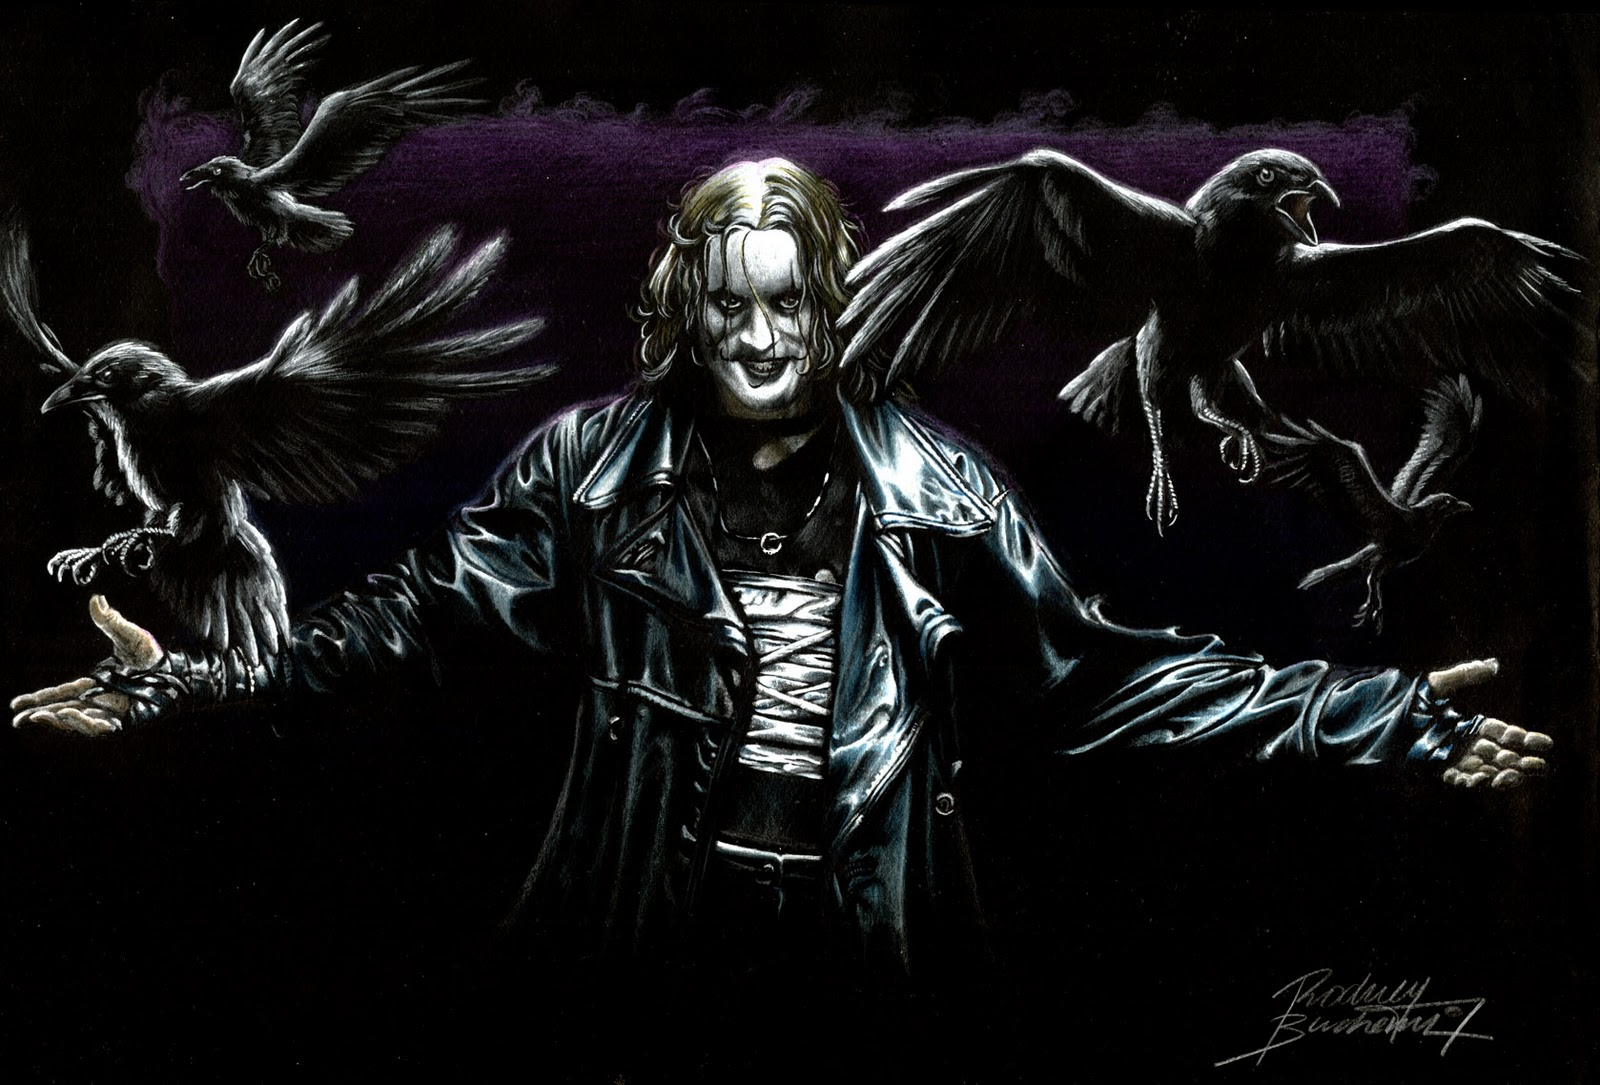 Brandon_Lee_The_Crow_by_Buchemi.jpg